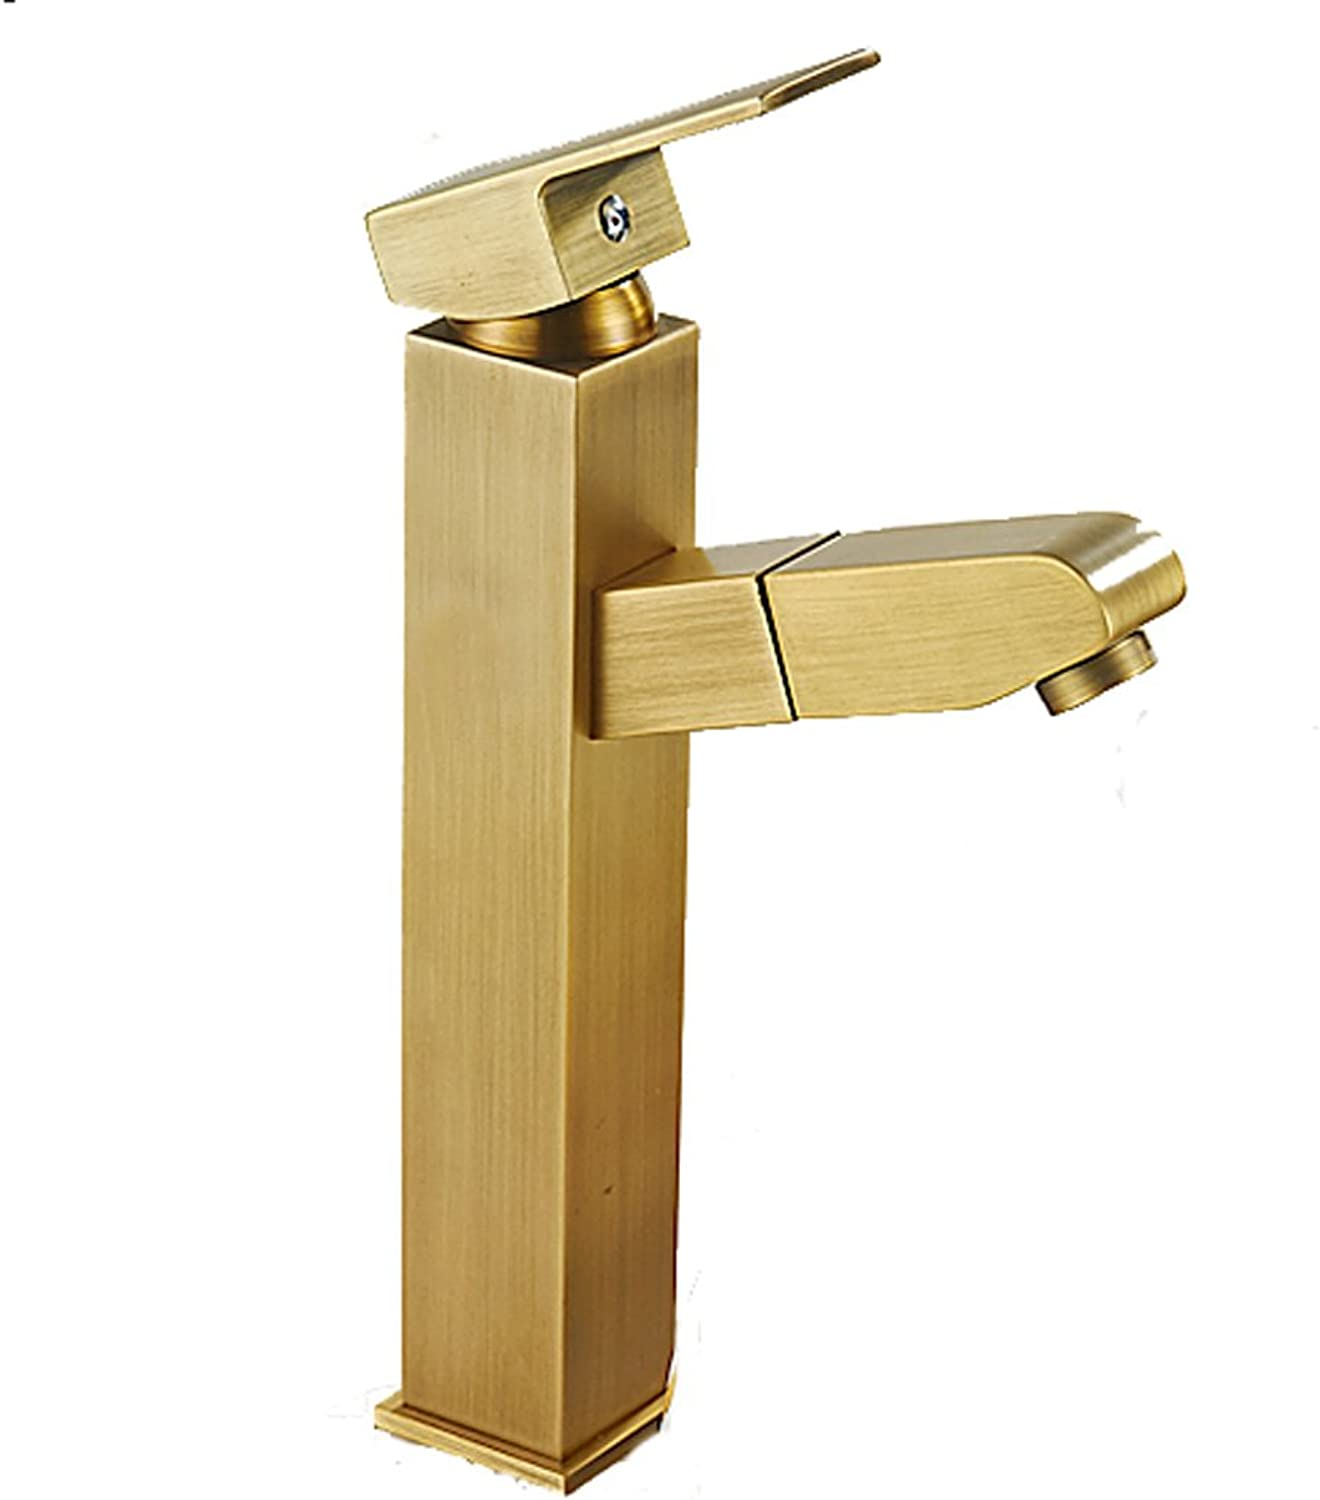 HAODAMAI Square High-style Faucet Copper Pull Type Hot And Cold Single Hole Retro European Style Bathroom Wash Basin Aperture Is 32MM To 42MM Can Be Installed